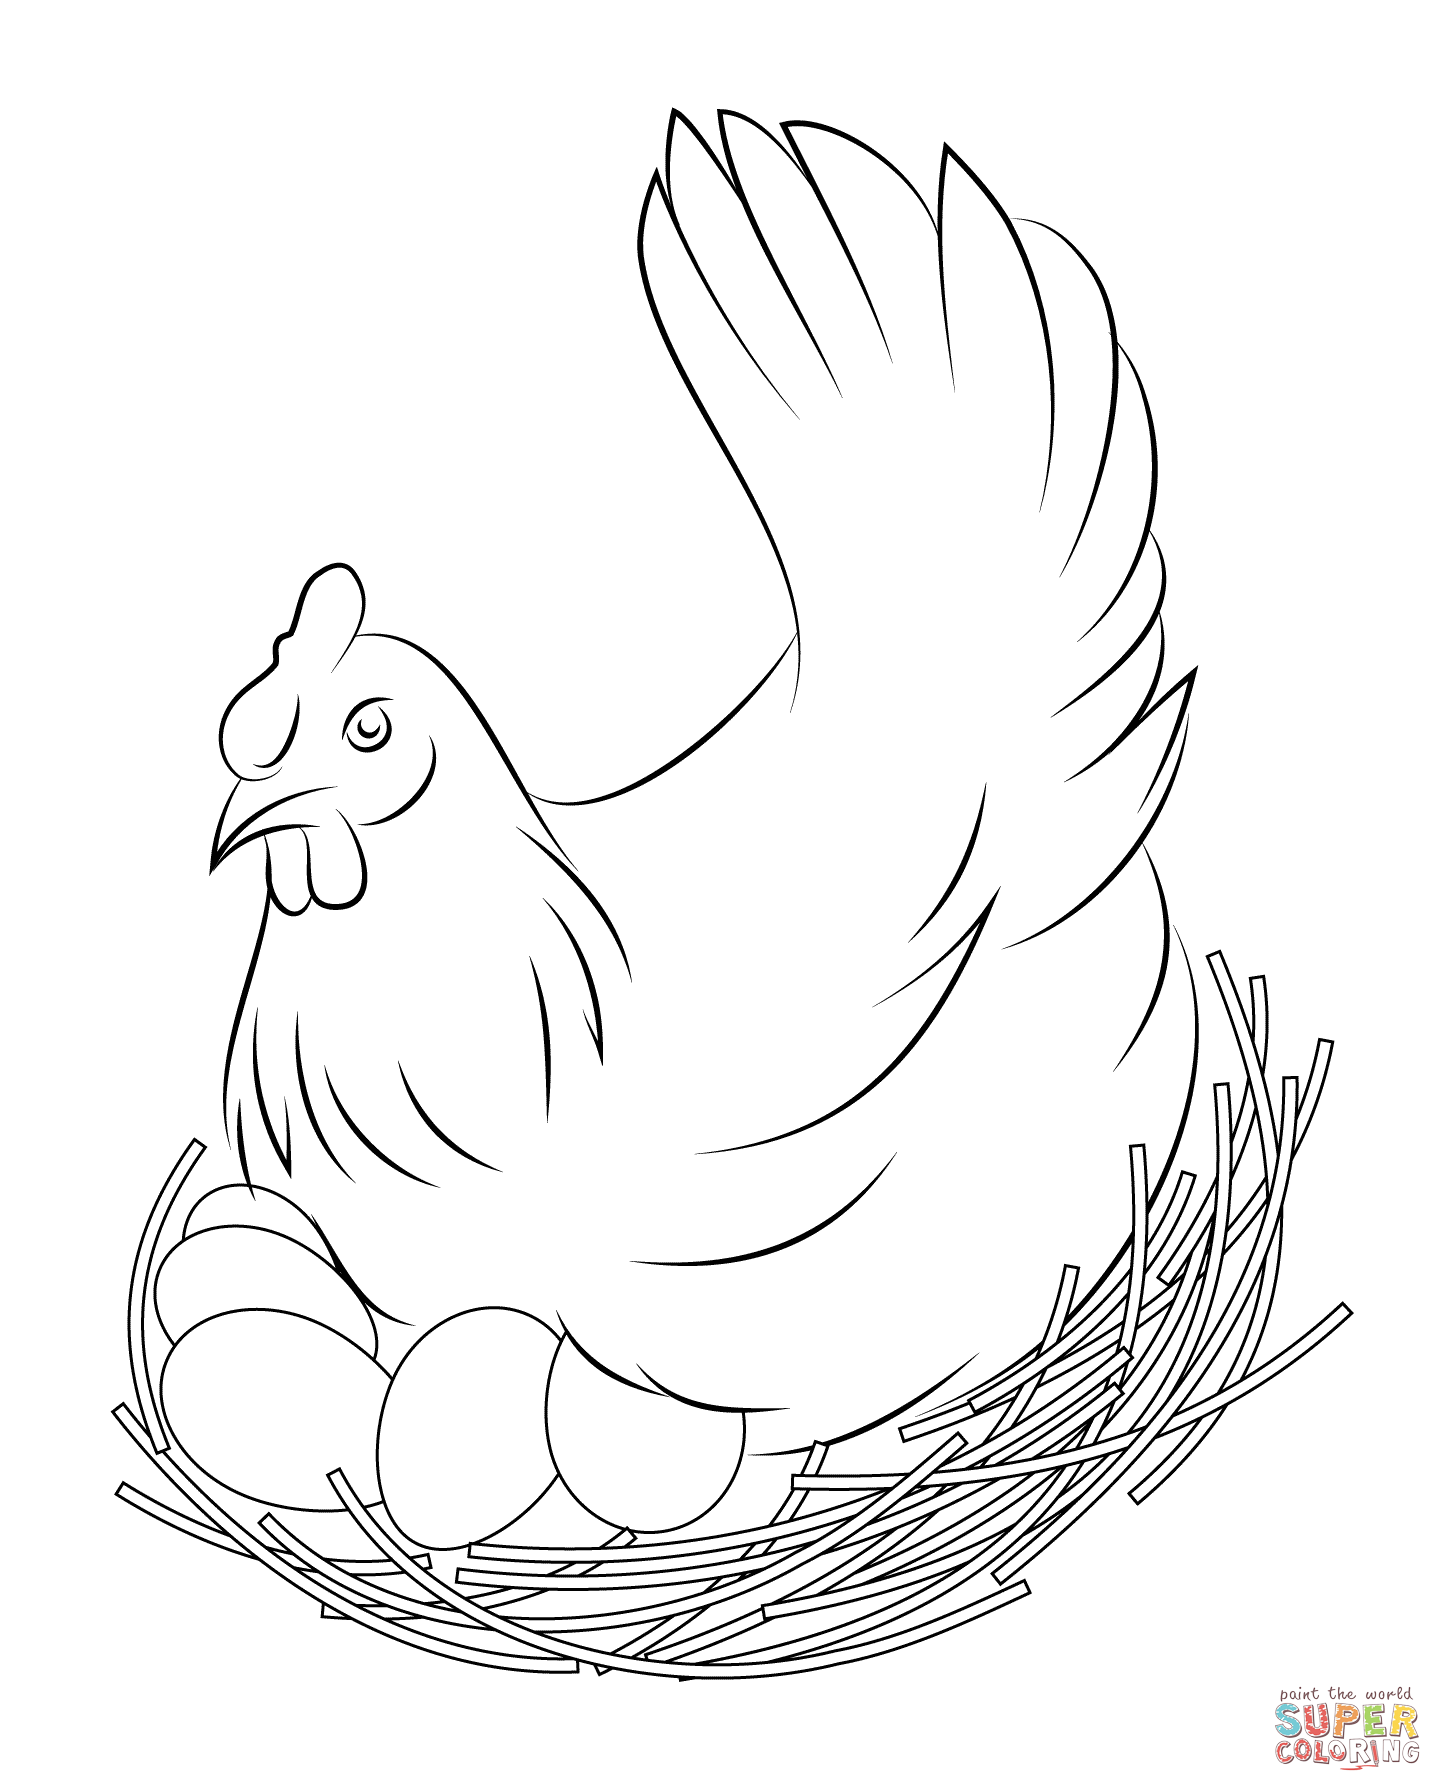 Chicken Coloring Pages Free Coloring Pages Chicken Coloring Pages Bird Coloring Pages Chicken Coloring